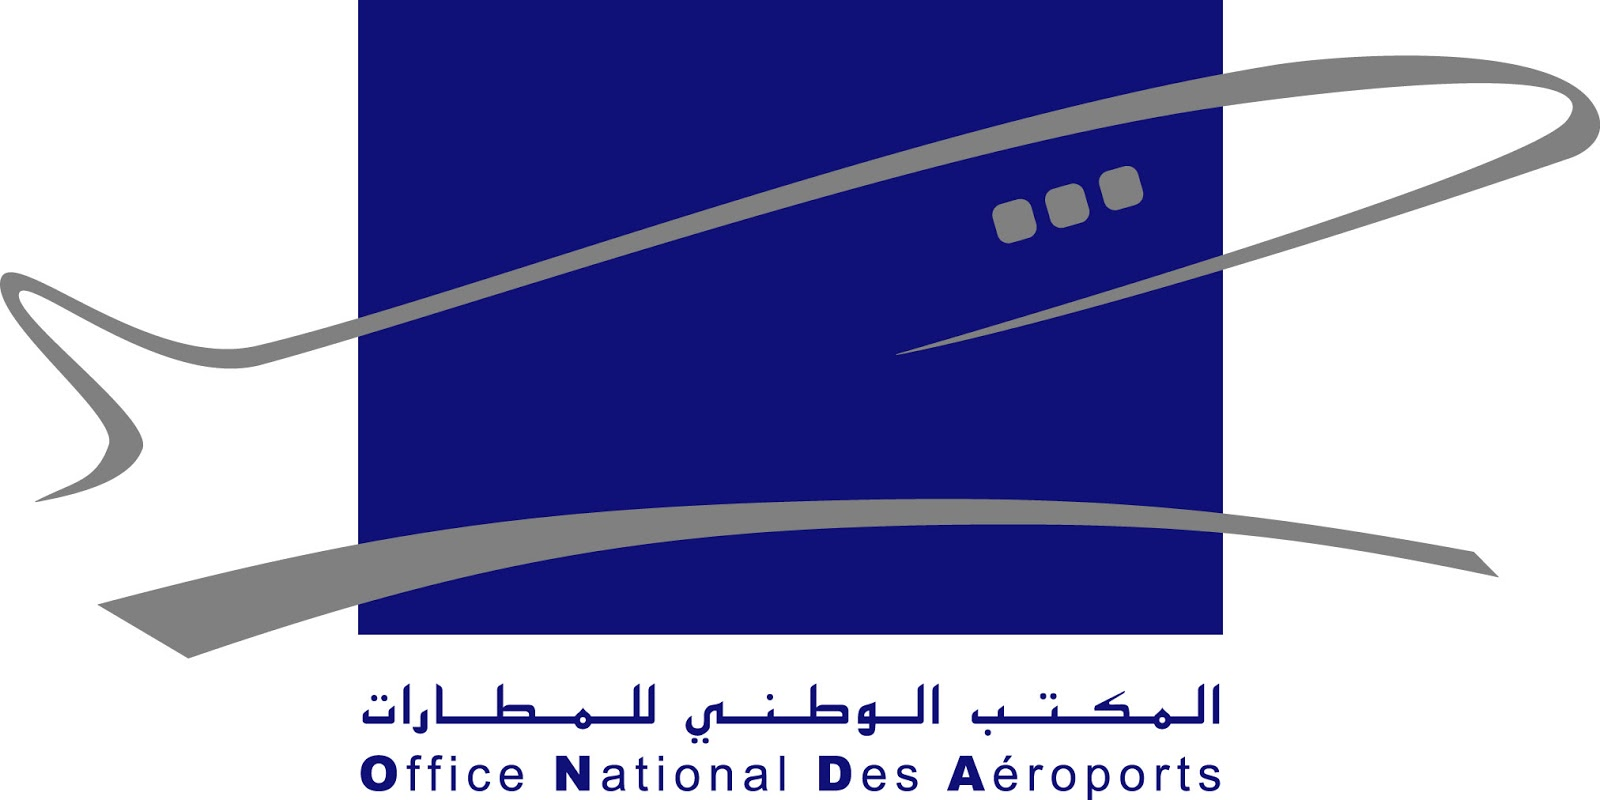 //www.finance-consult.fr/wp-content/uploads/2016/09/7.-Aéroport-Maroc.jpg